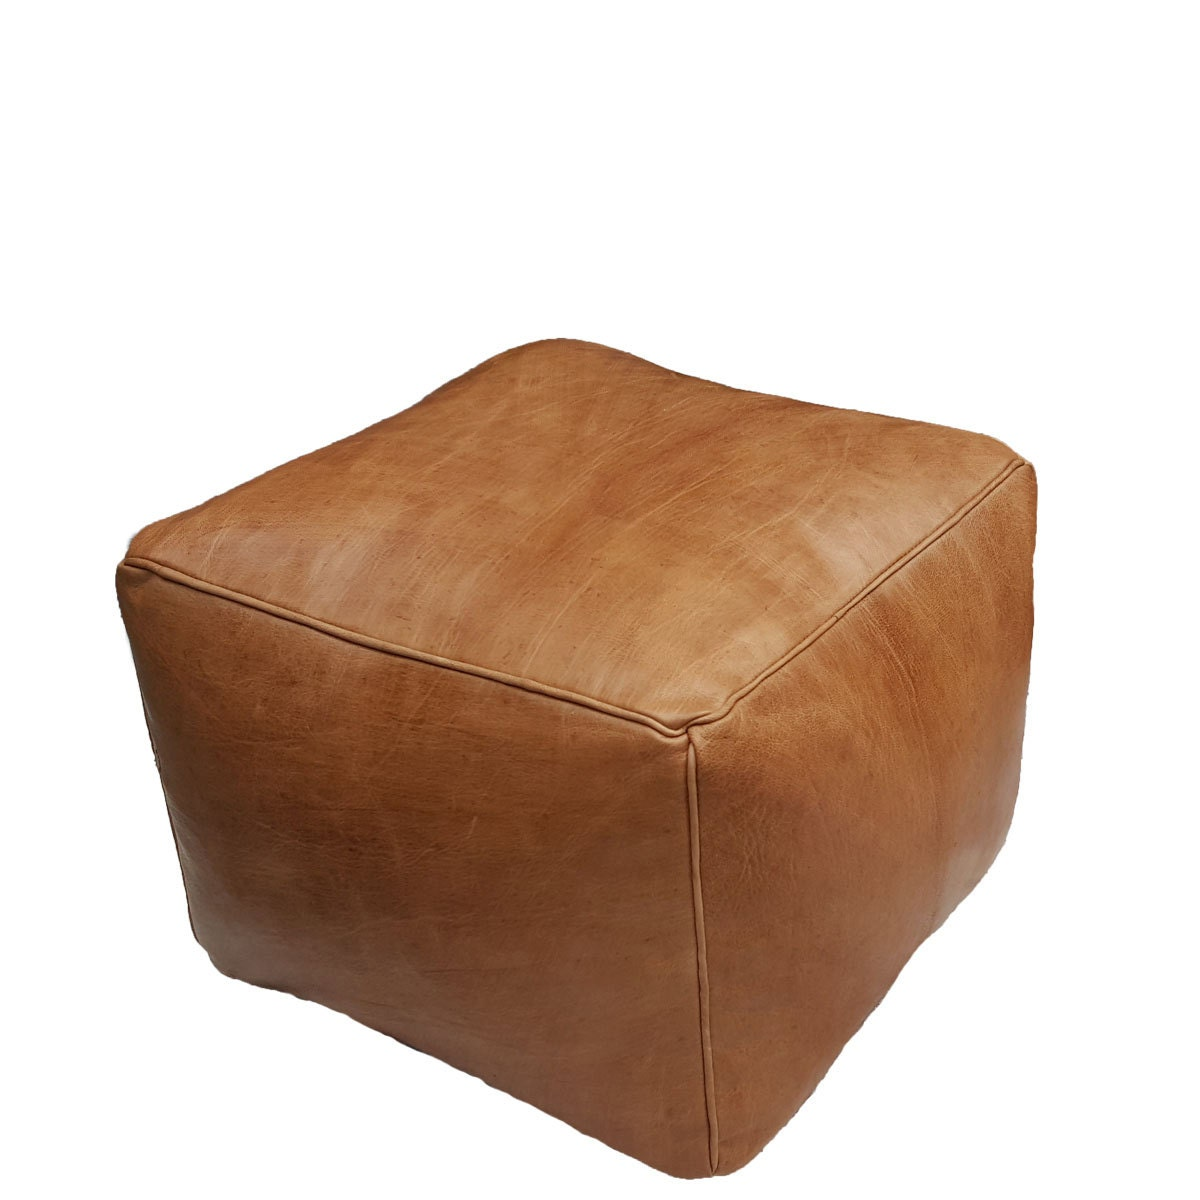 leather pouf ottoman natural leather brown cube small. Black Bedroom Furniture Sets. Home Design Ideas